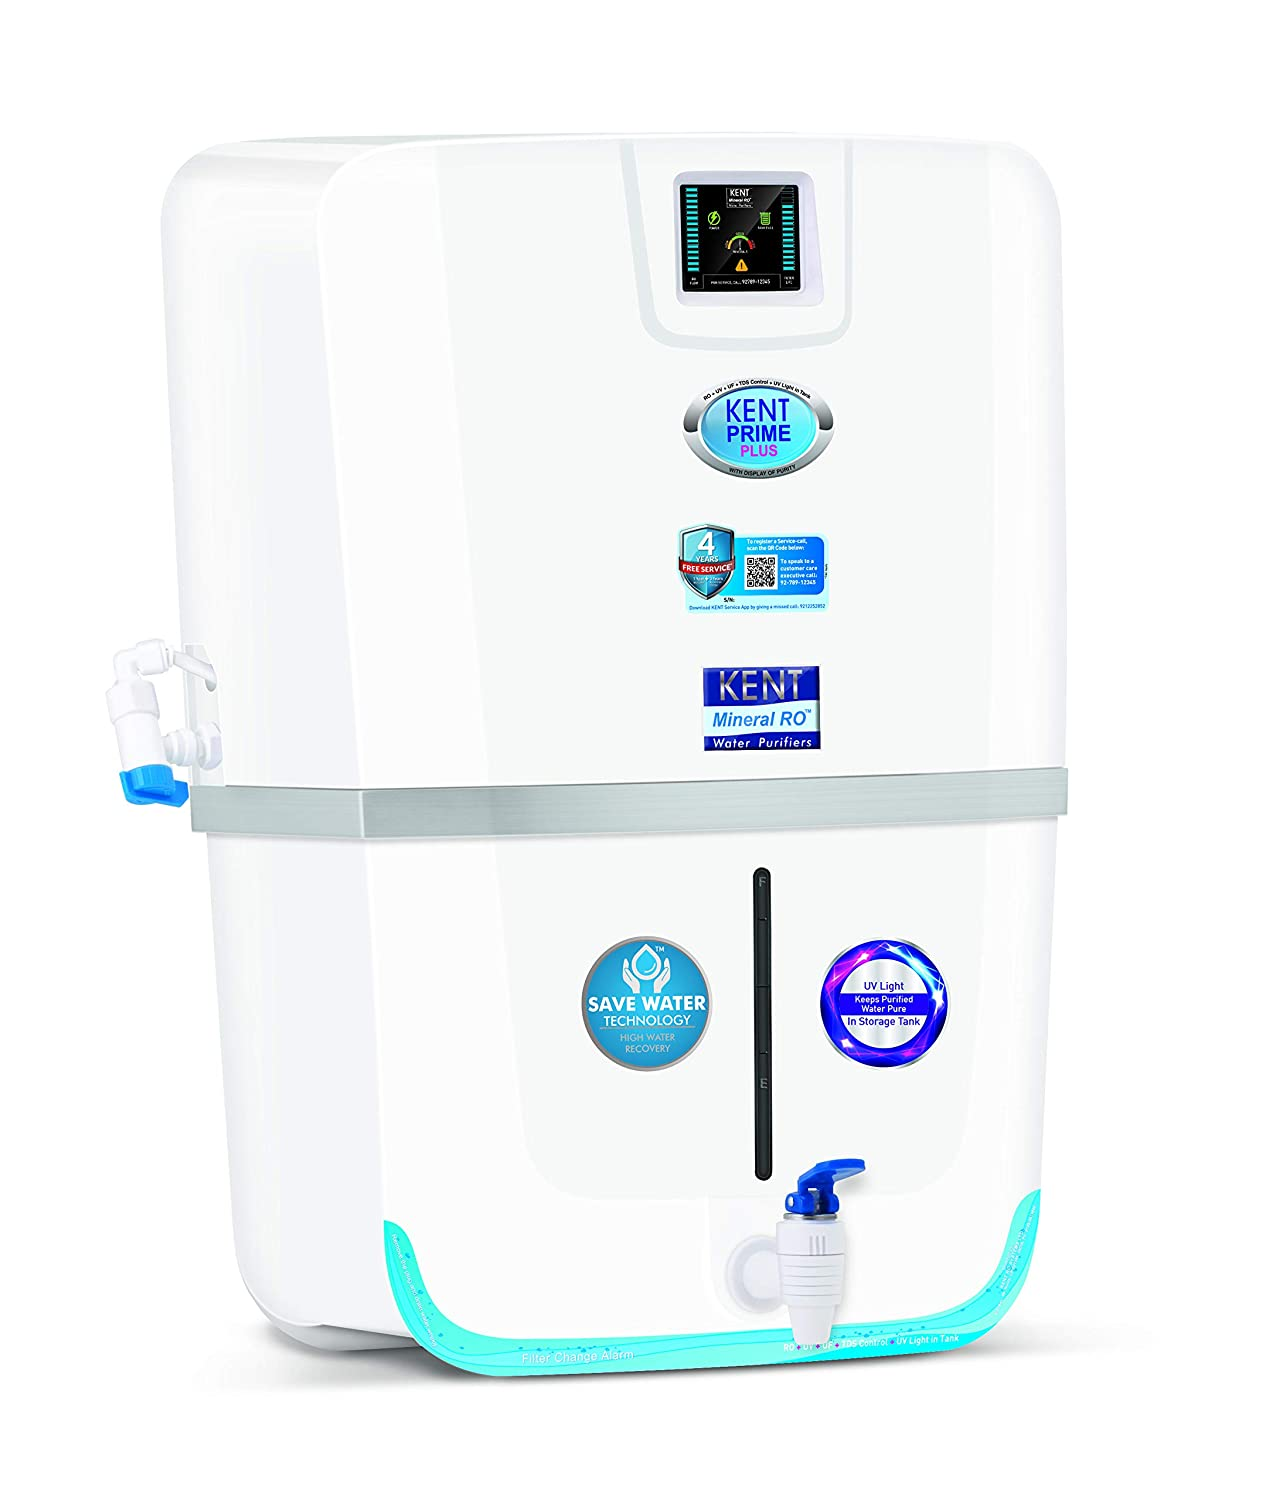 5c0256e0cf8 KENT Prime Plus 11065 20-Litre RO Water Purifier (White)  Amazon.in  Home    Kitchen